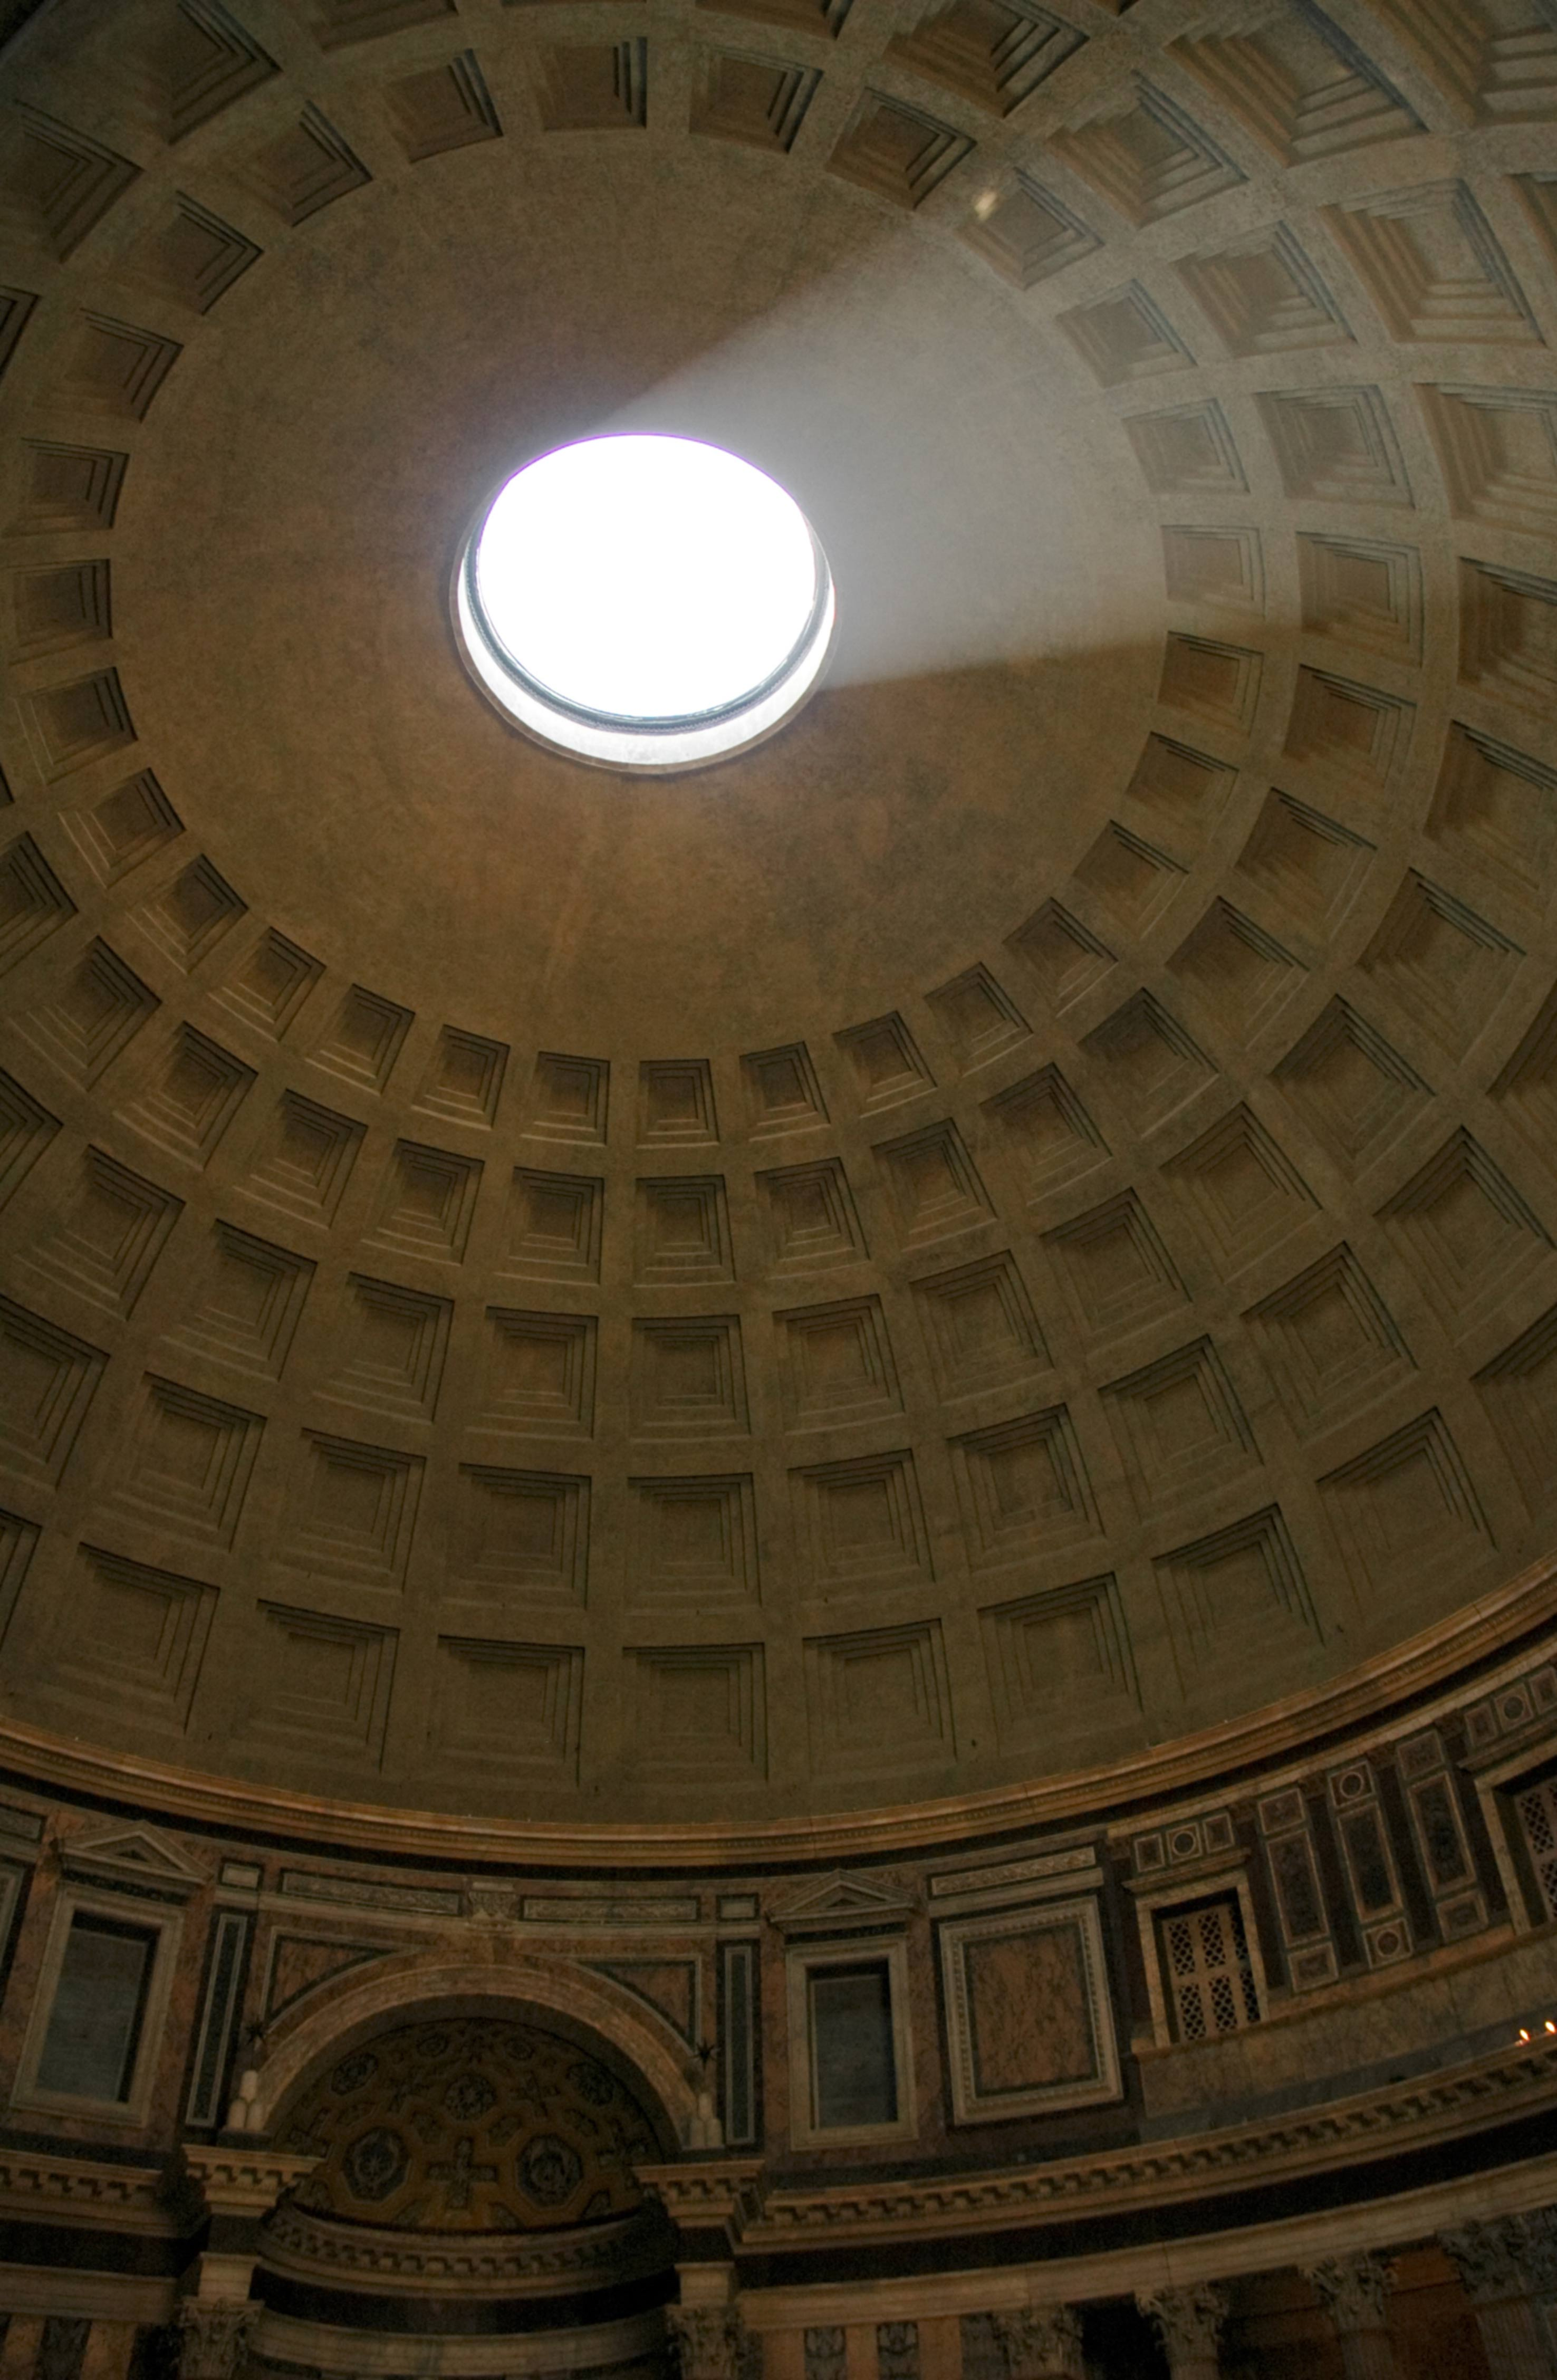 The Pantheon dome with an oculus admitting the only light.